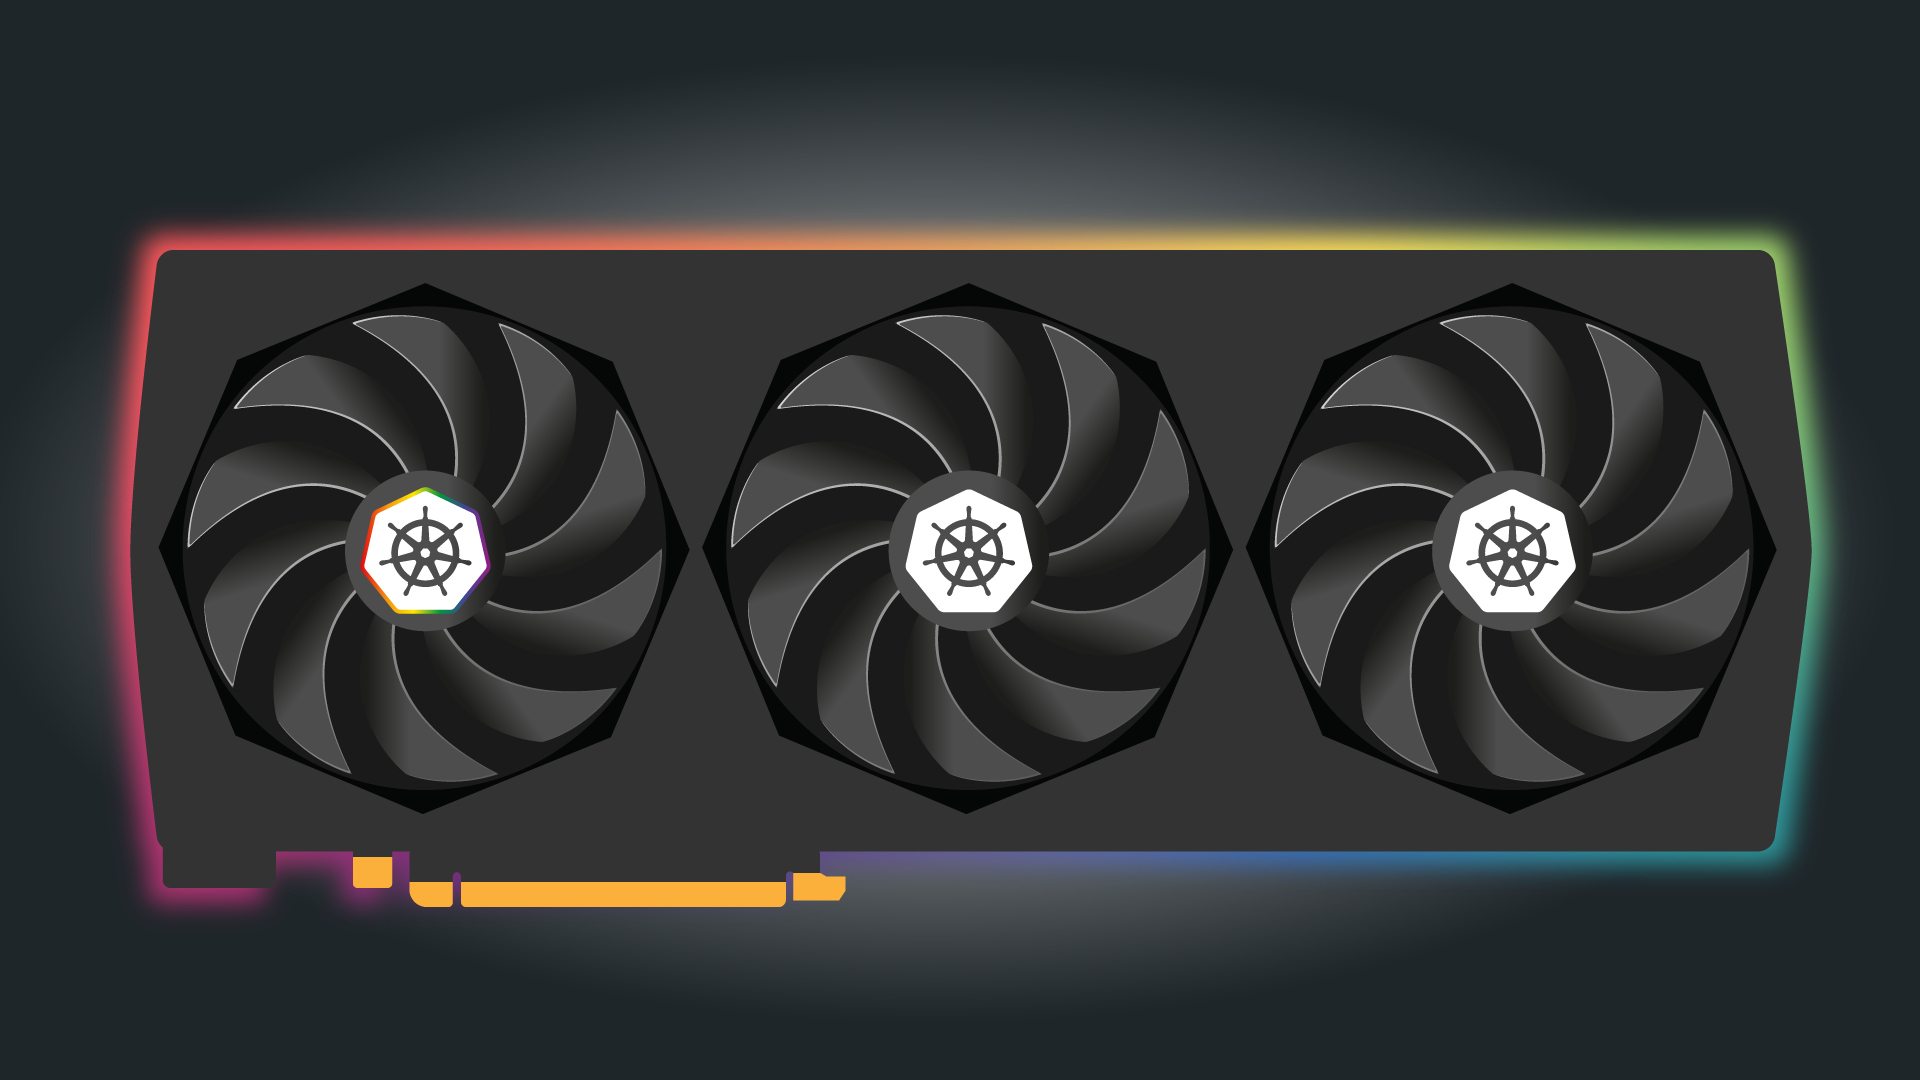 A graphics card with 1 active core